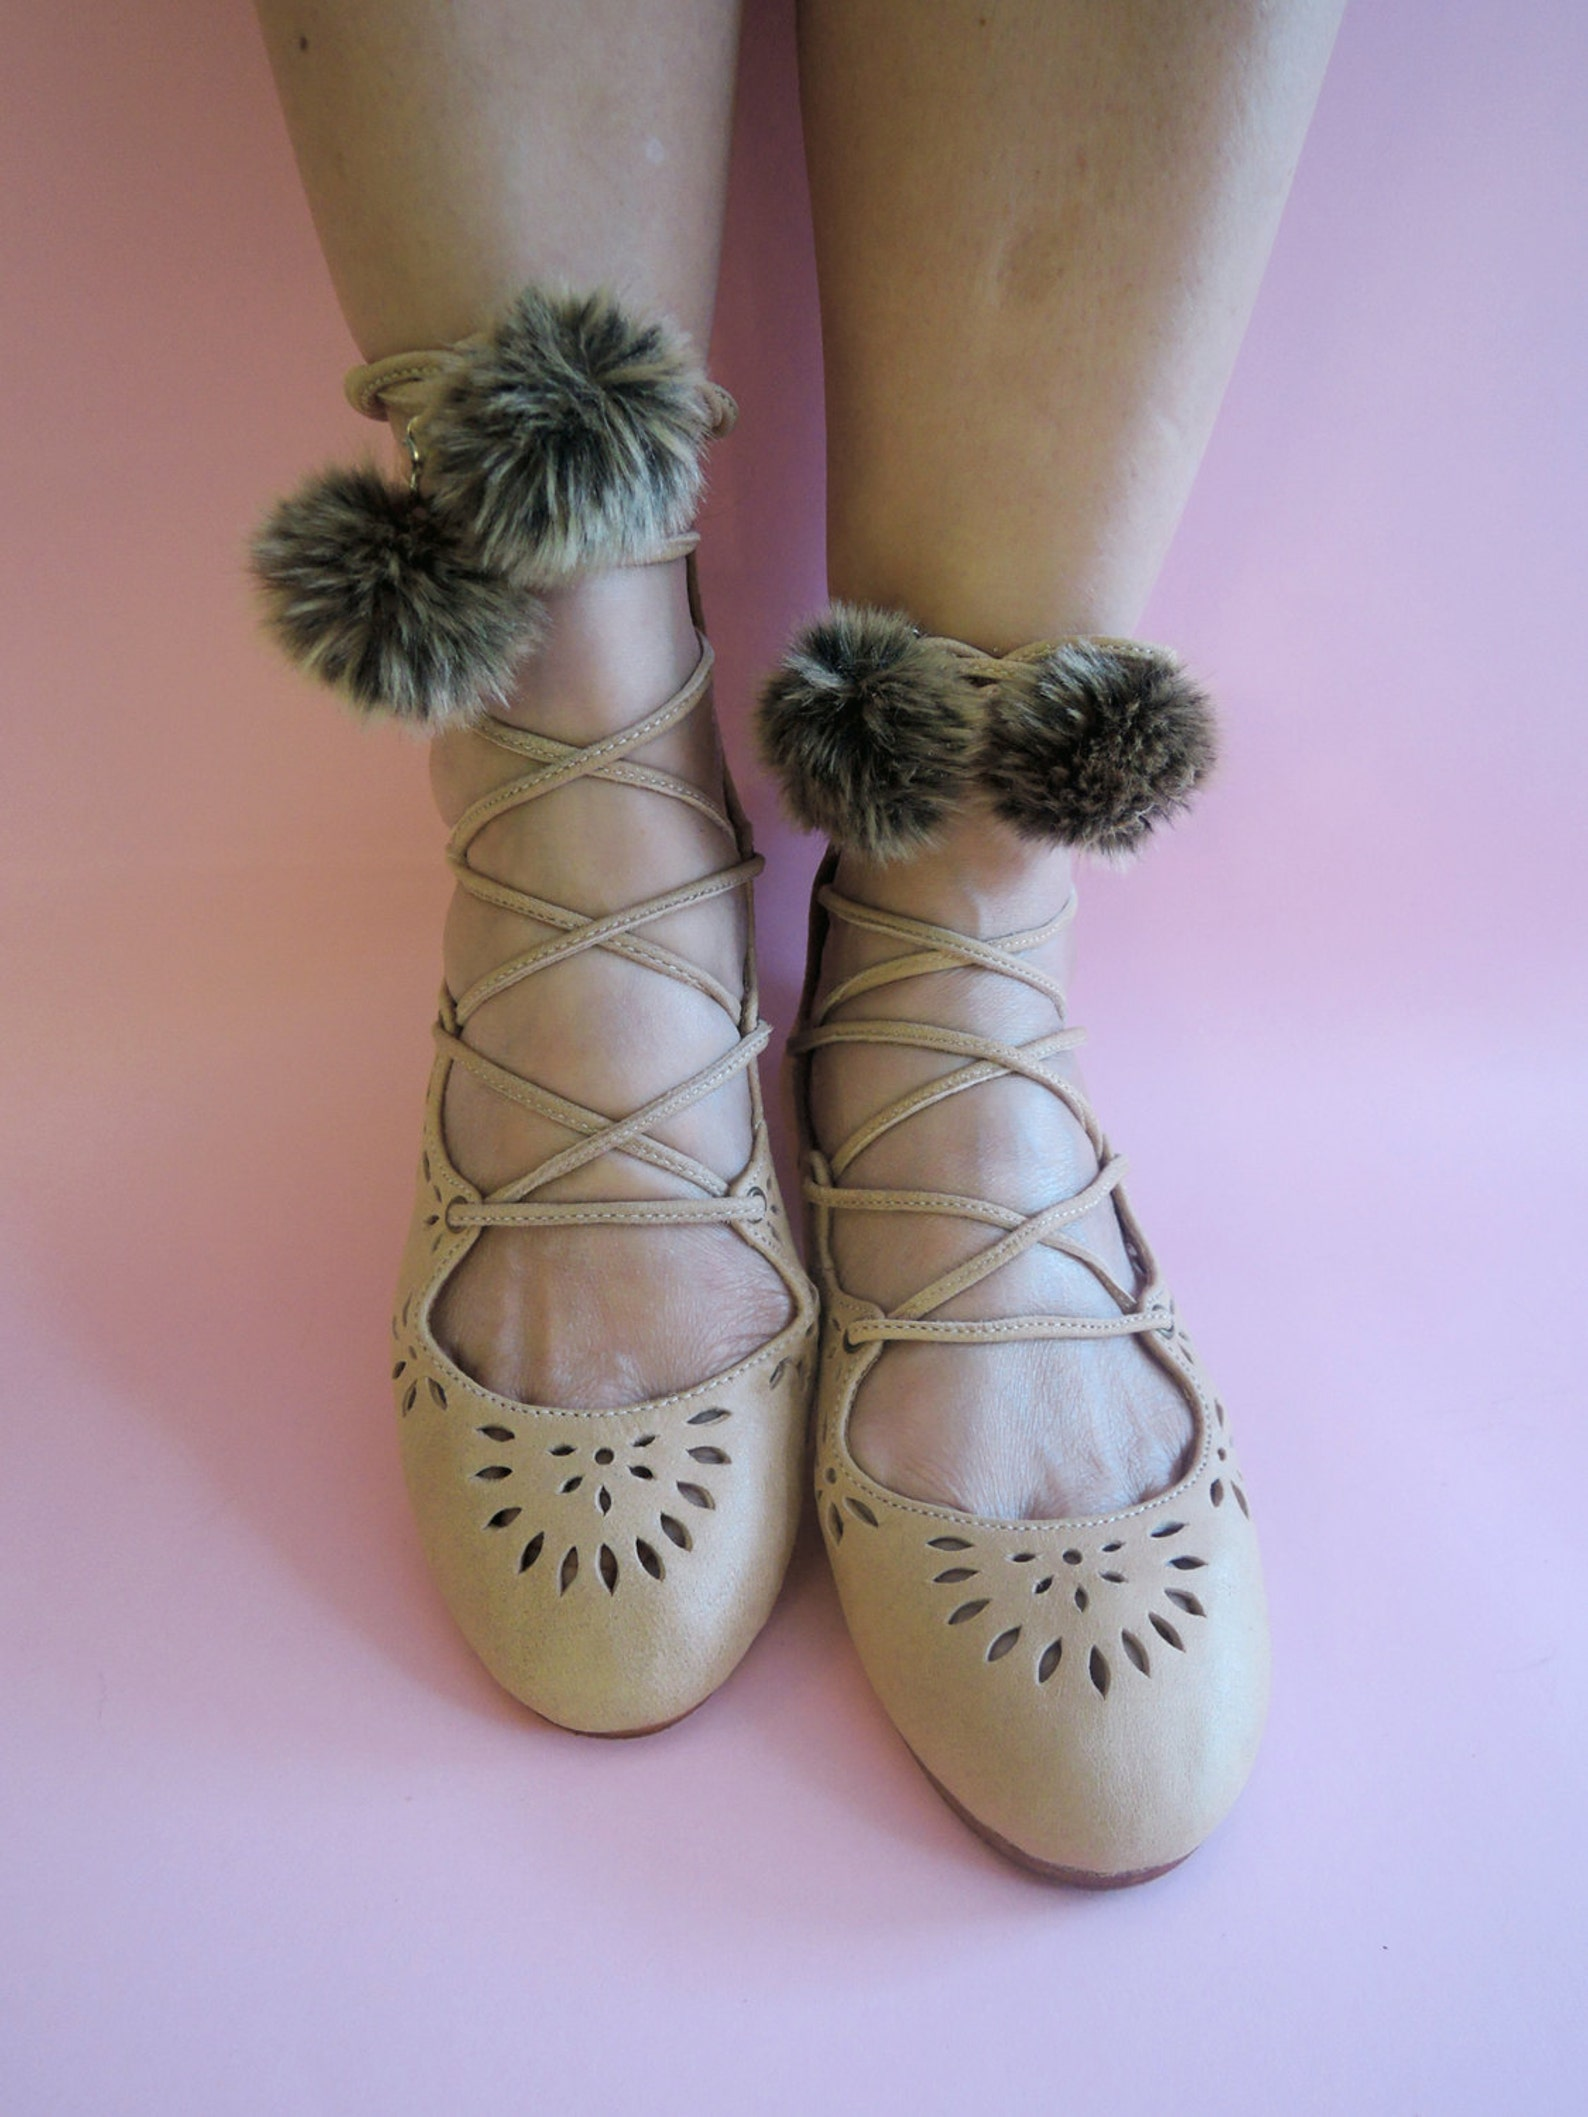 kathy ballet shoes with pom poms. tan leather sandals for women. ballet flats w/ ribbon lace up straps. hand tooled cut work. 10